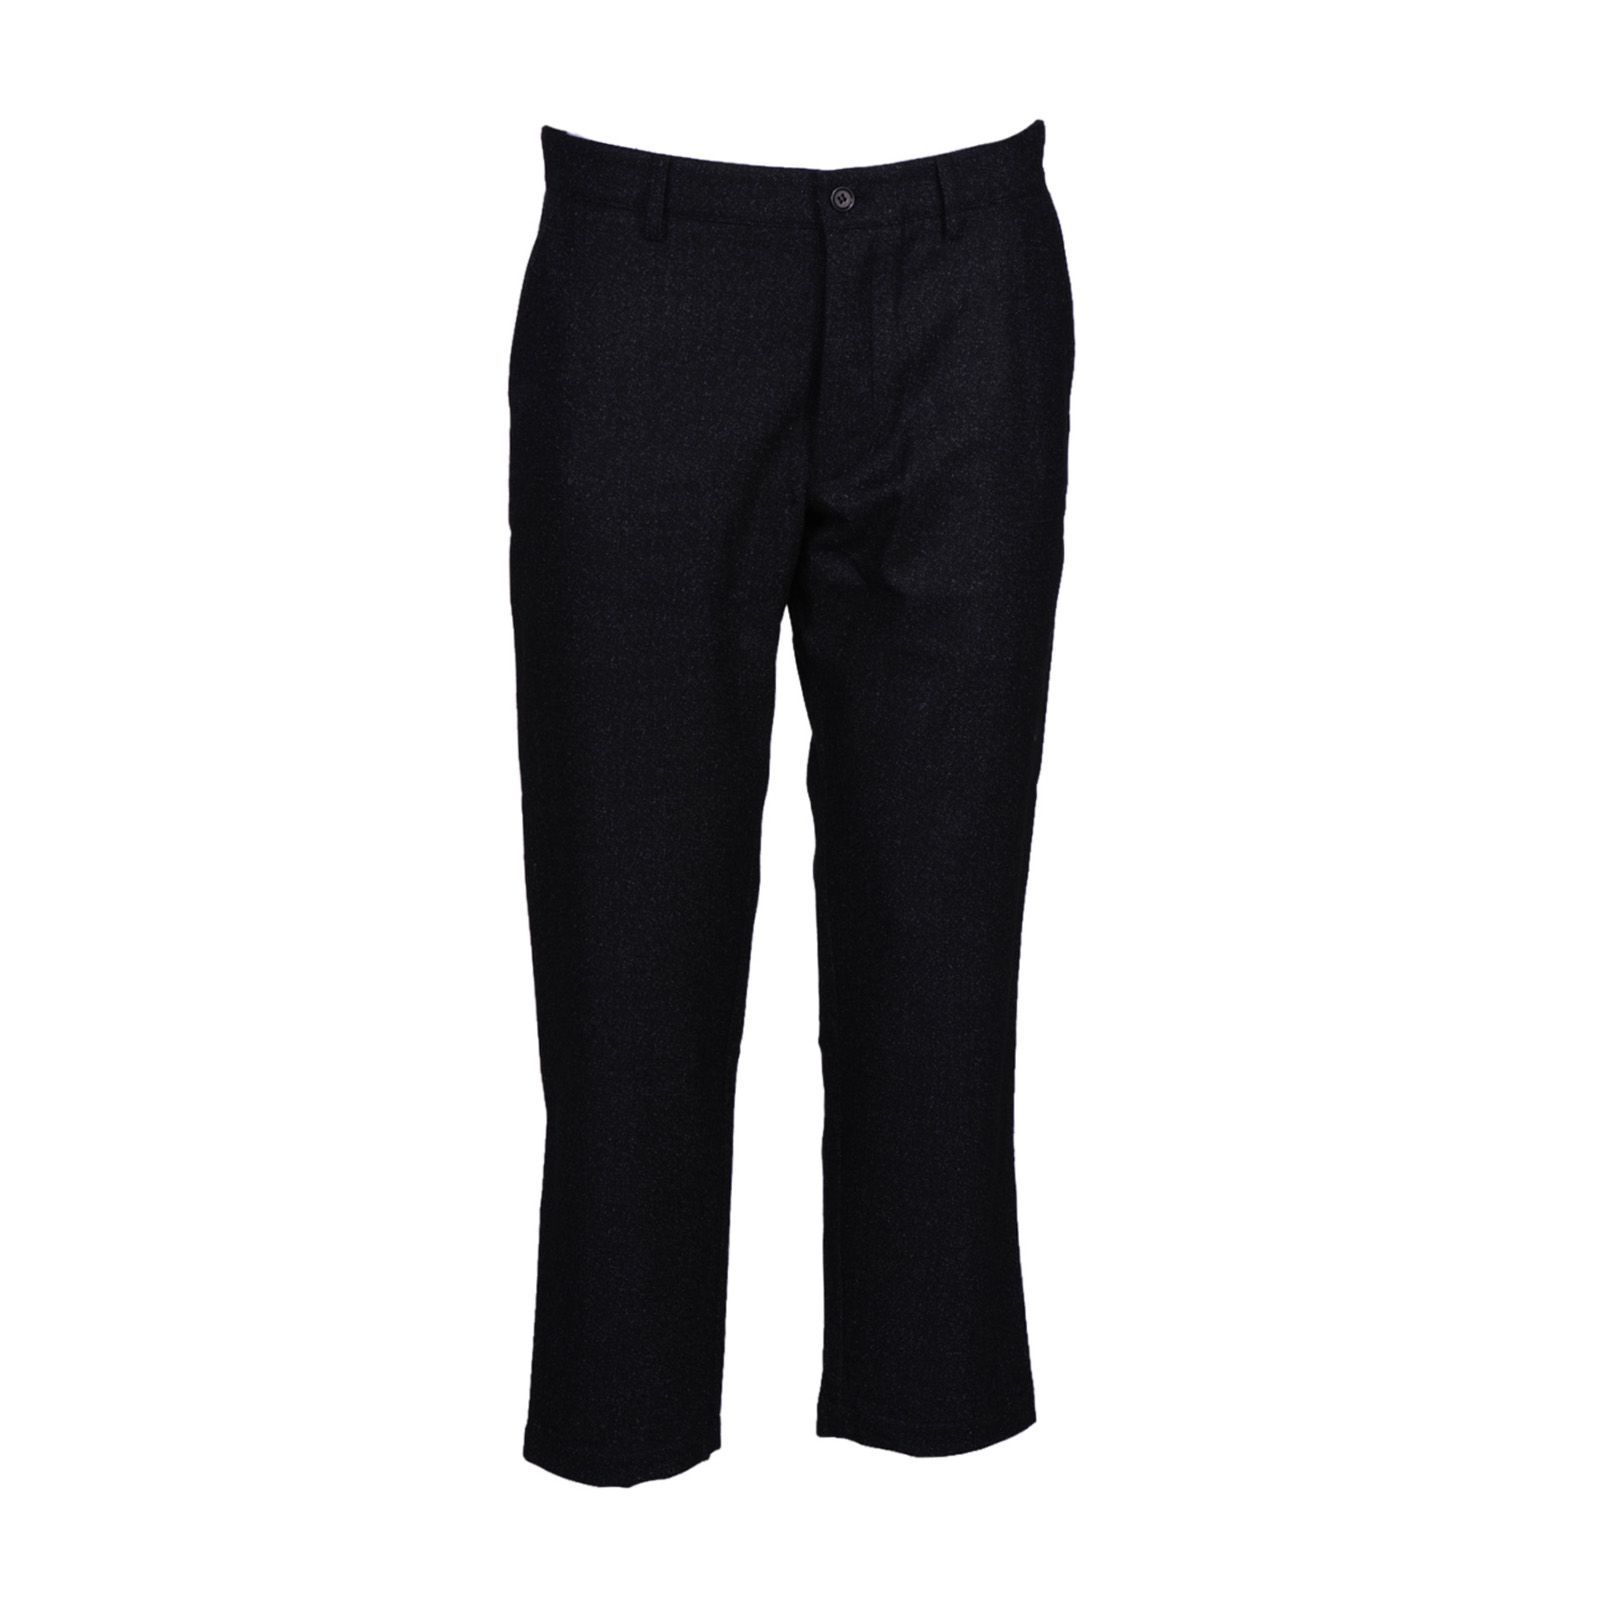 Ymc Cropped Tailored Trousers